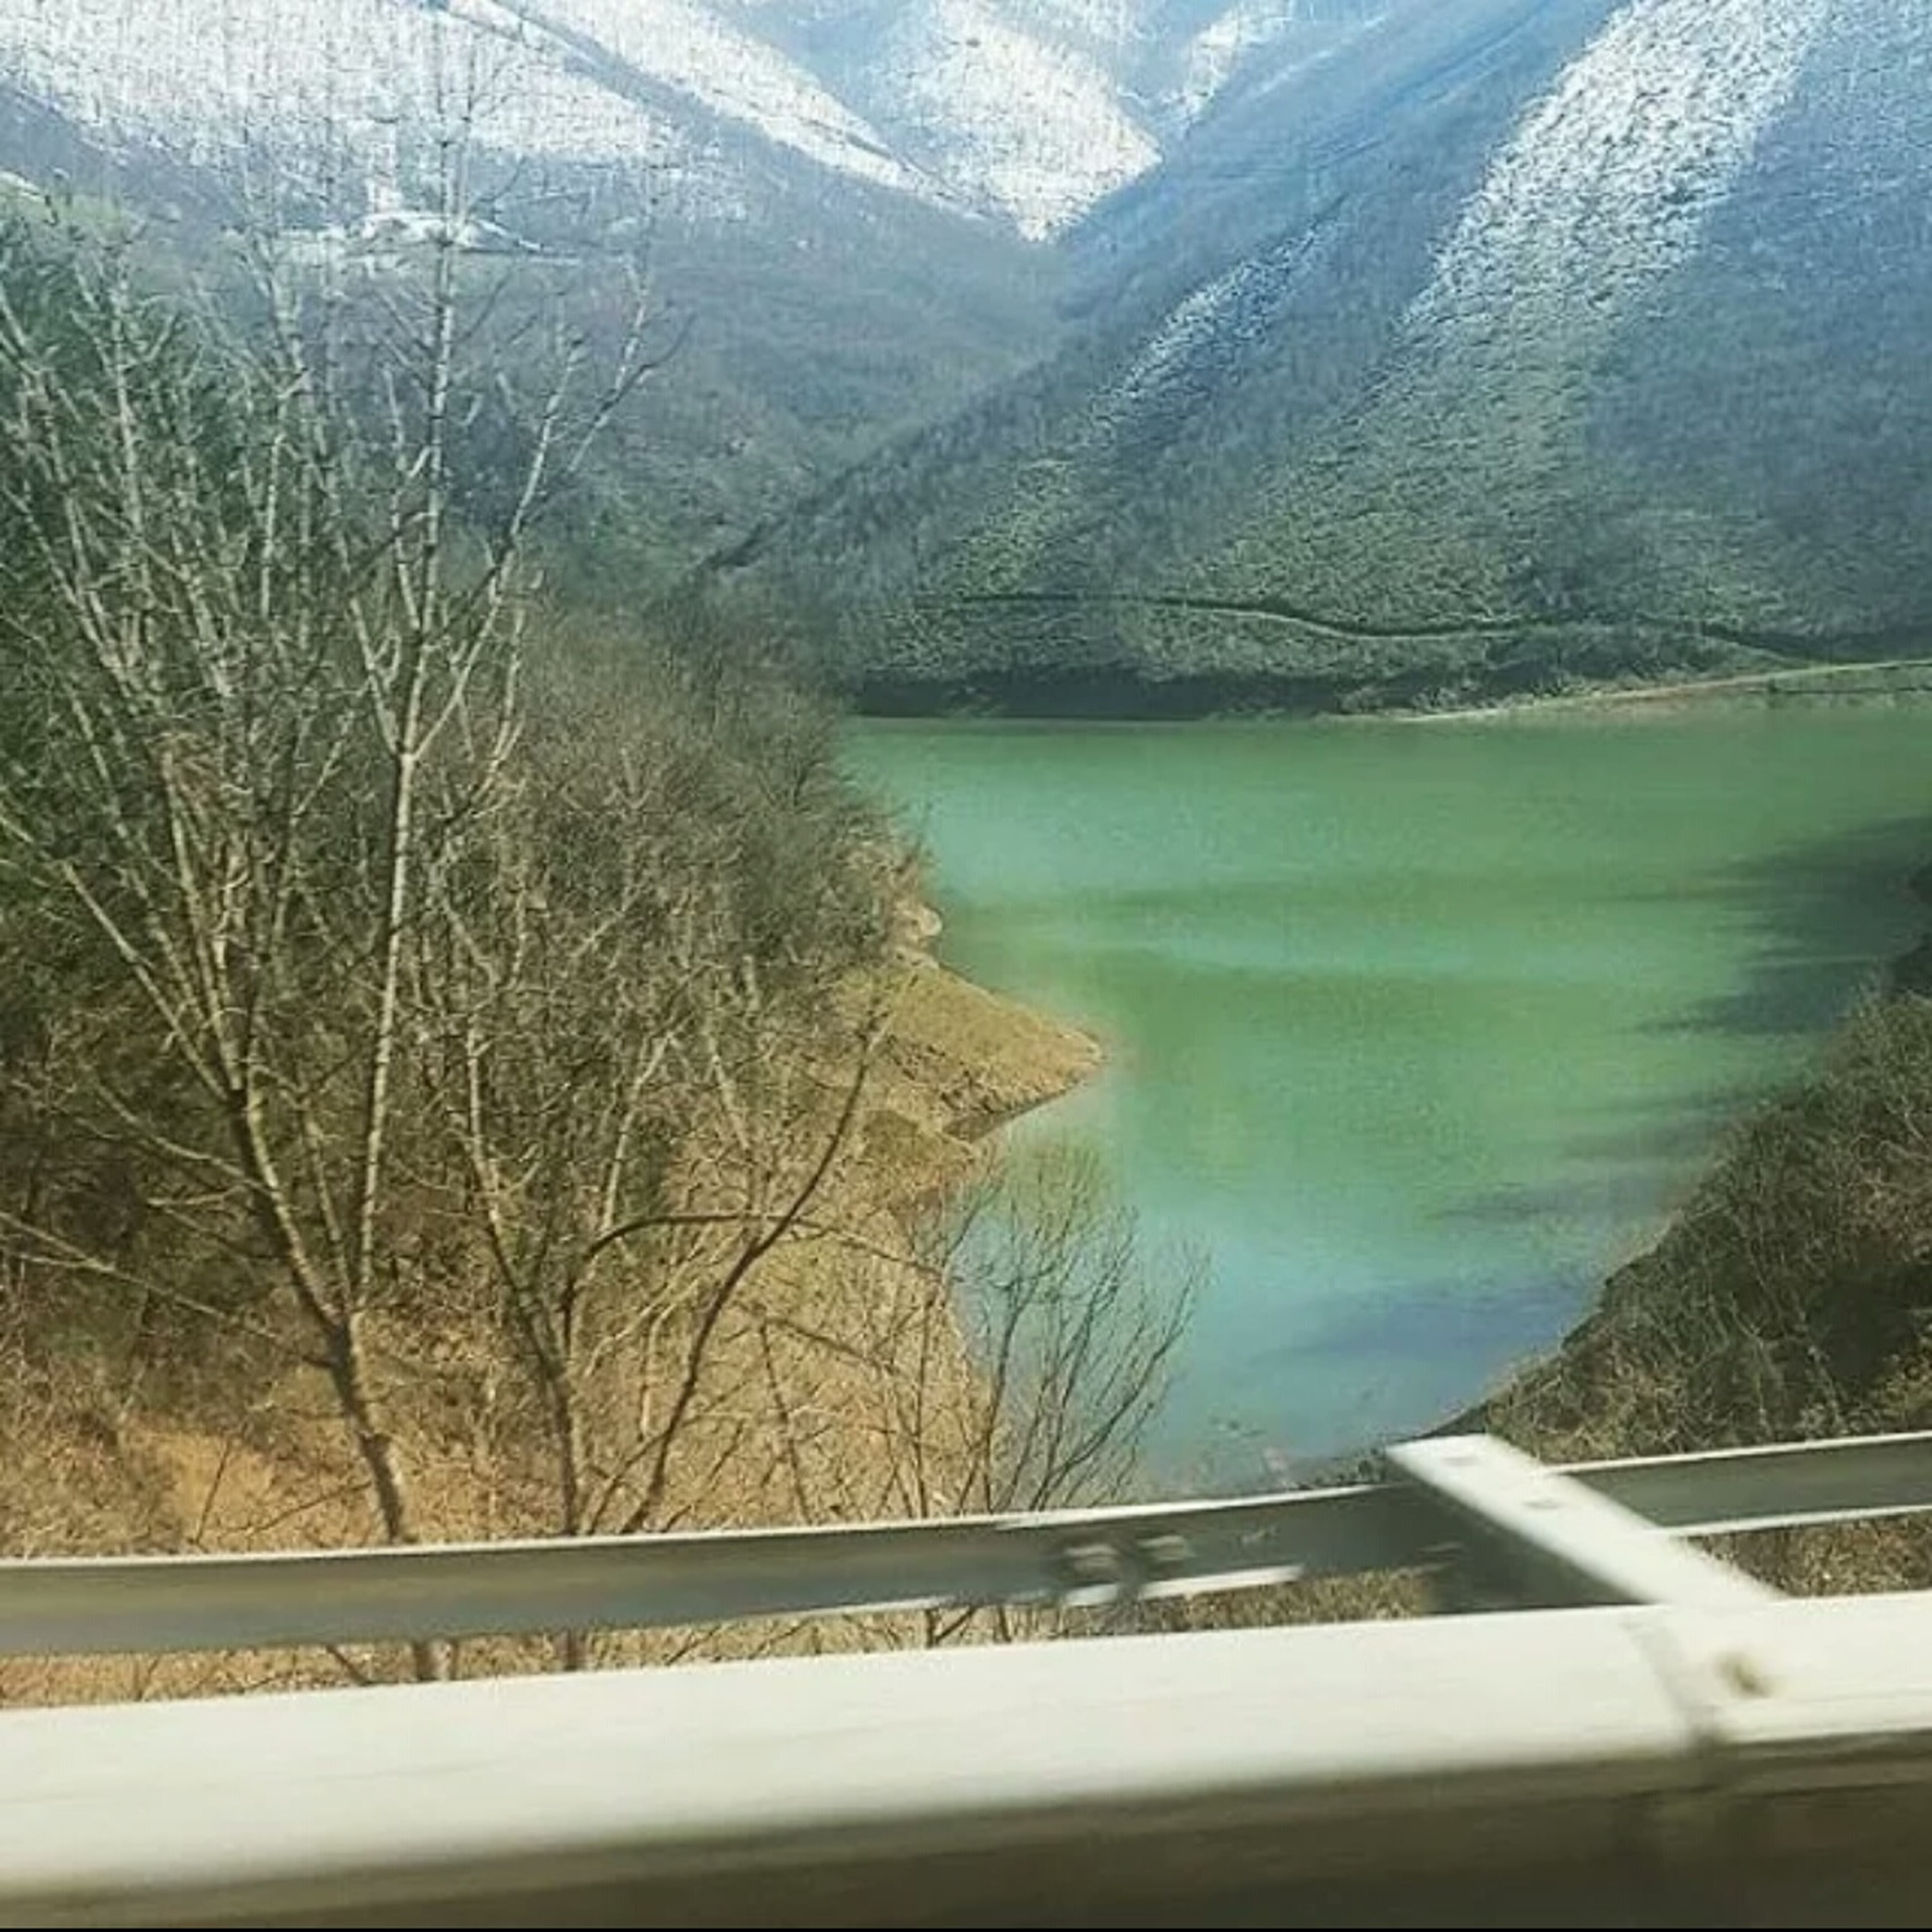 transportation, water, vehicle interior, mode of transport, tree, transparent, glass - material, nature, scenics, window, sky, beauty in nature, river, tranquility, tranquil scene, road, day, travel, high angle view, landscape